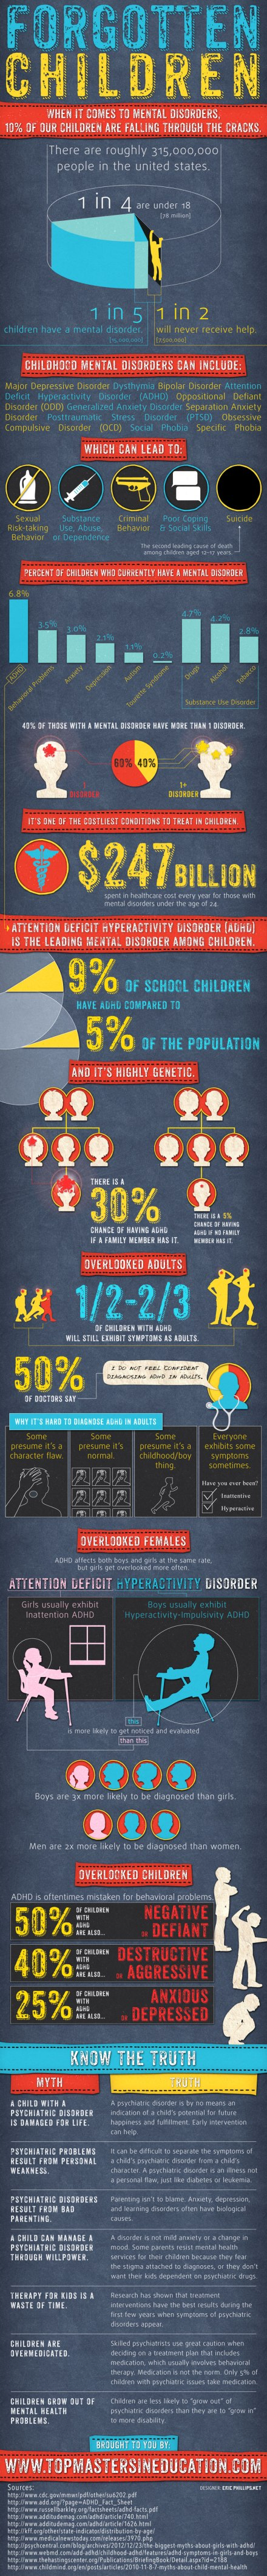 Infographic 10% slipping through the cracks, mental health